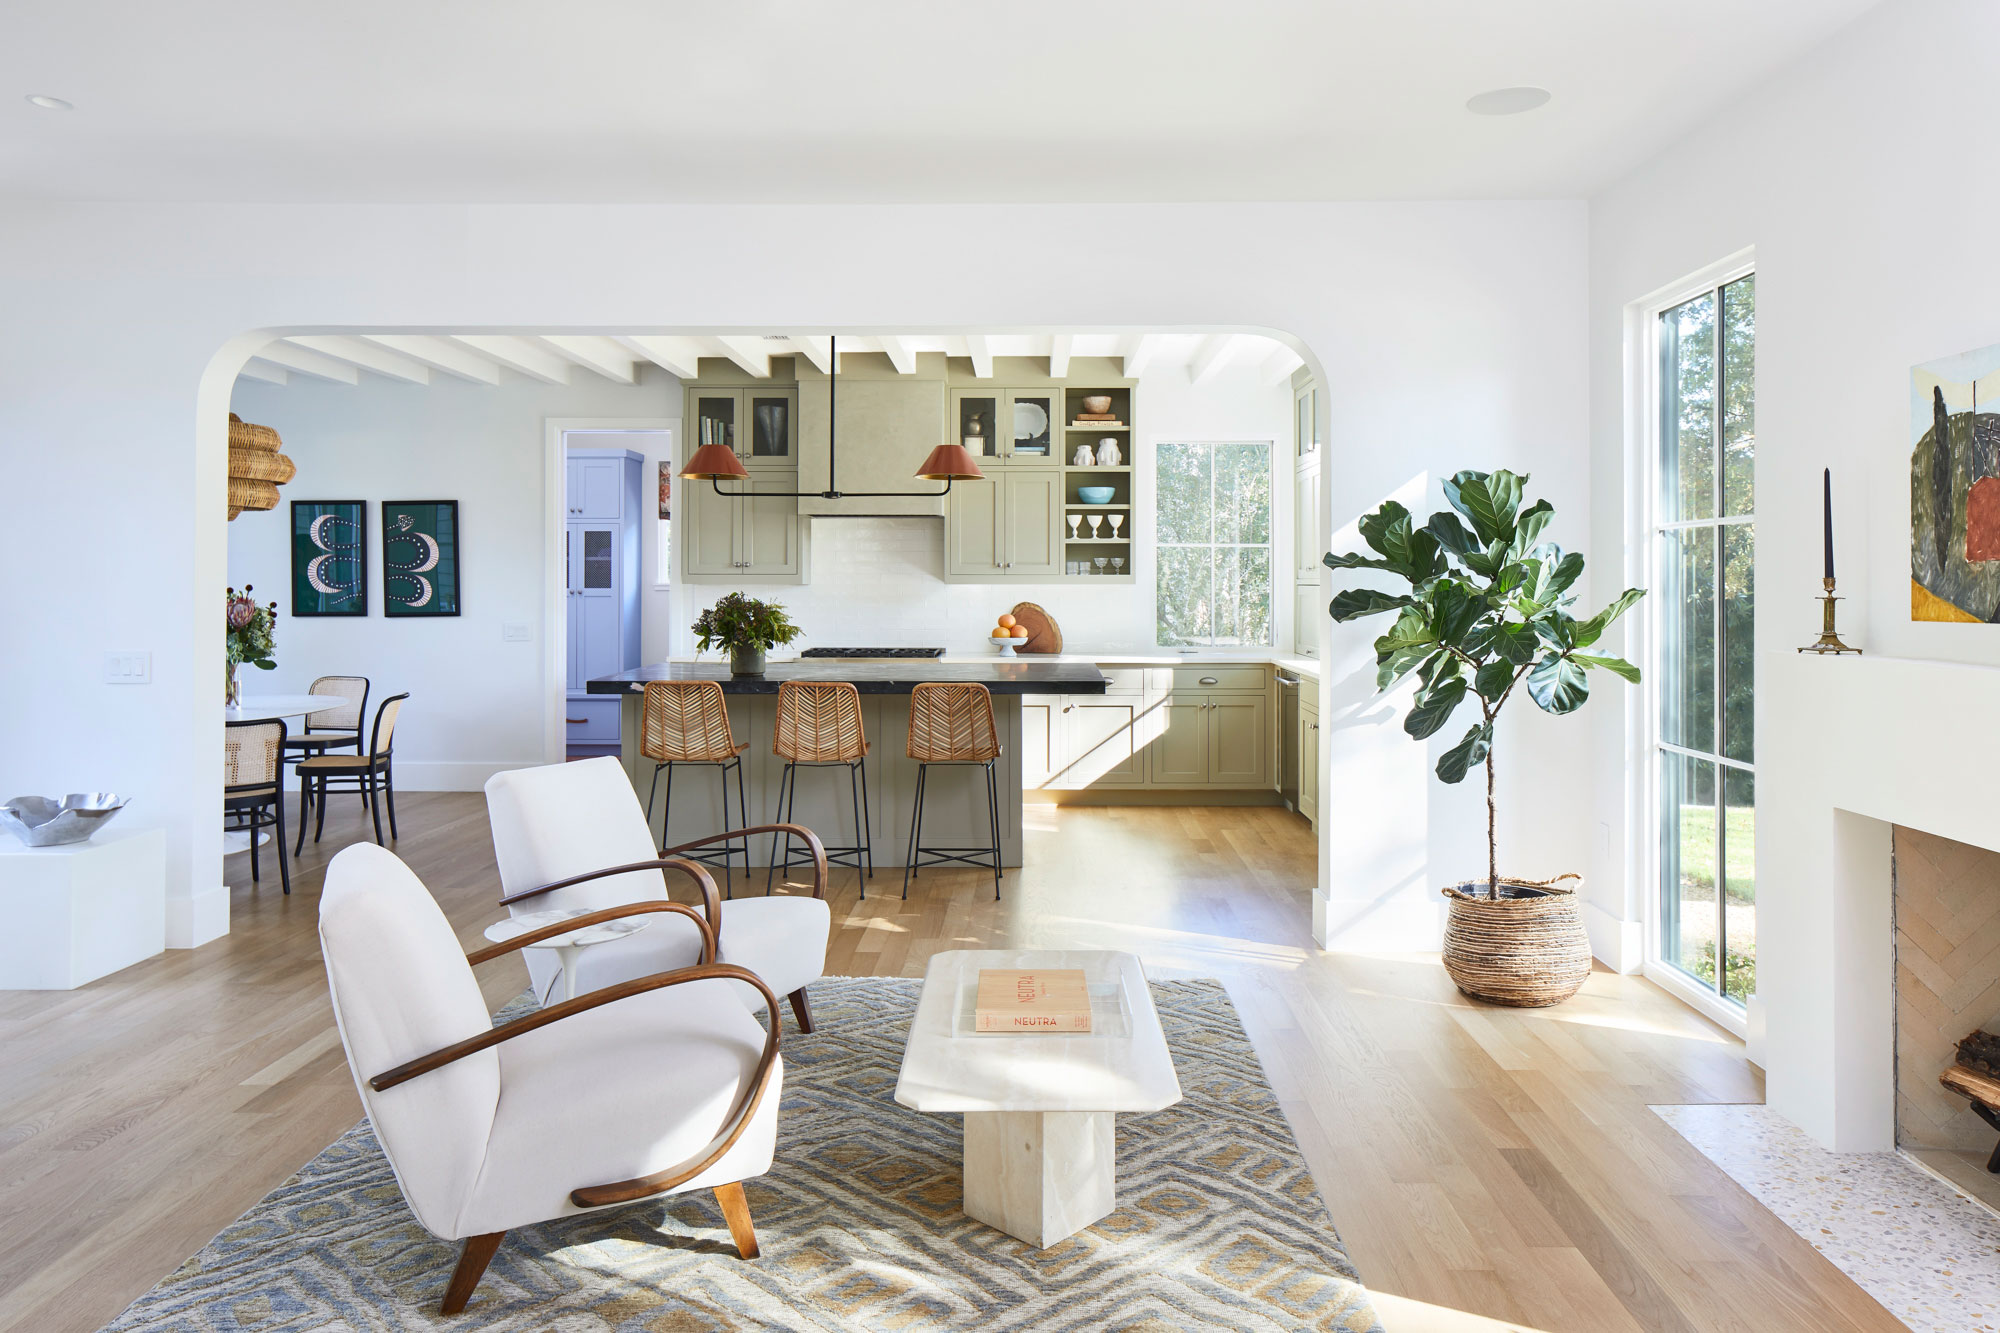 Open Floor Plan with Architectural Elements